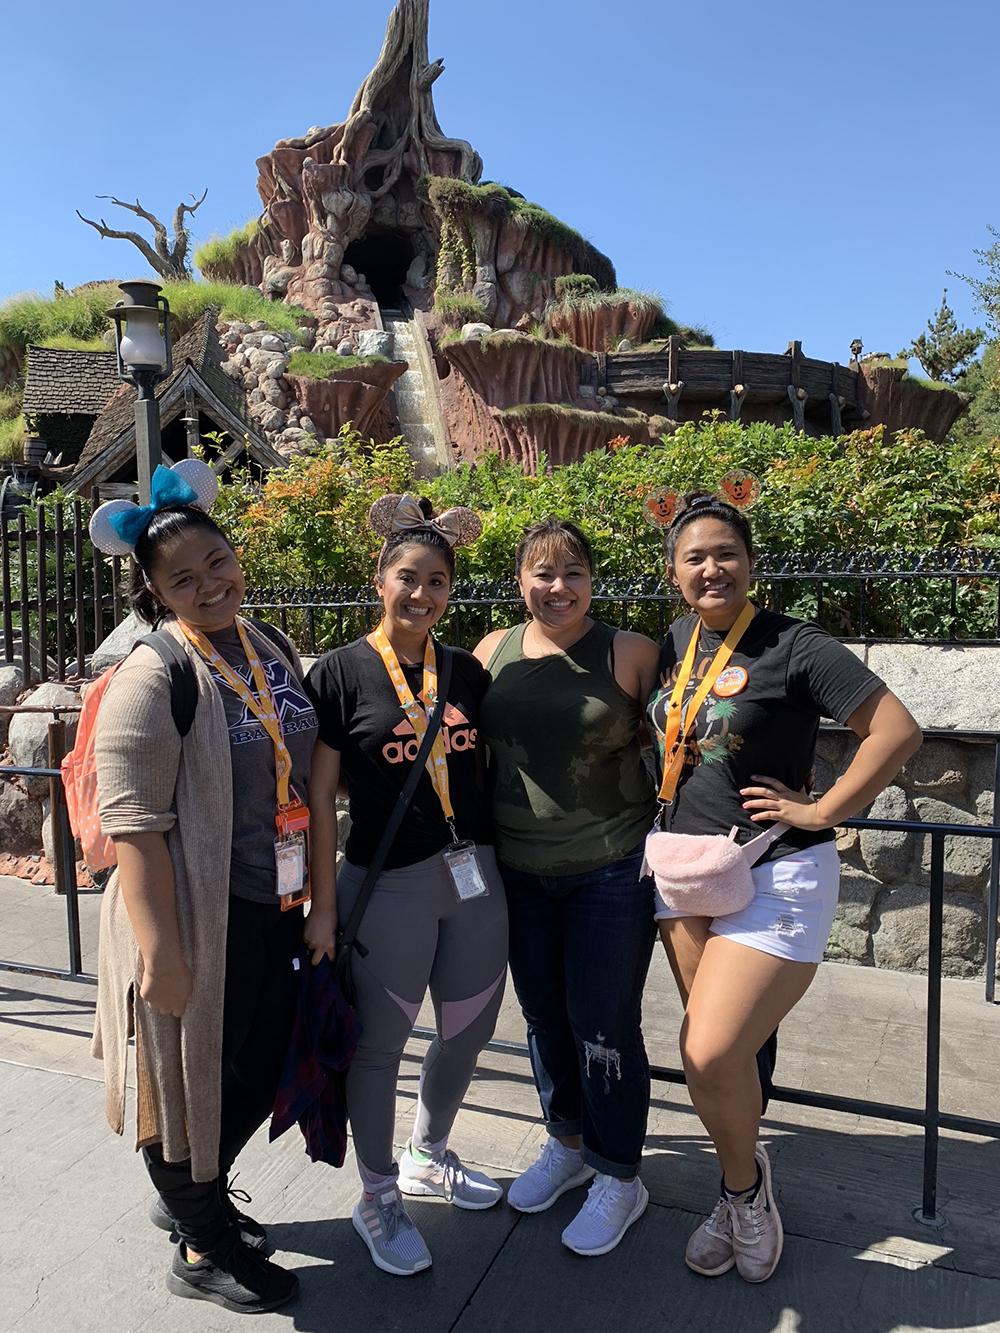 10/09/18 — After Splash Mountain. You can't see it but my jeans are soaking wet!